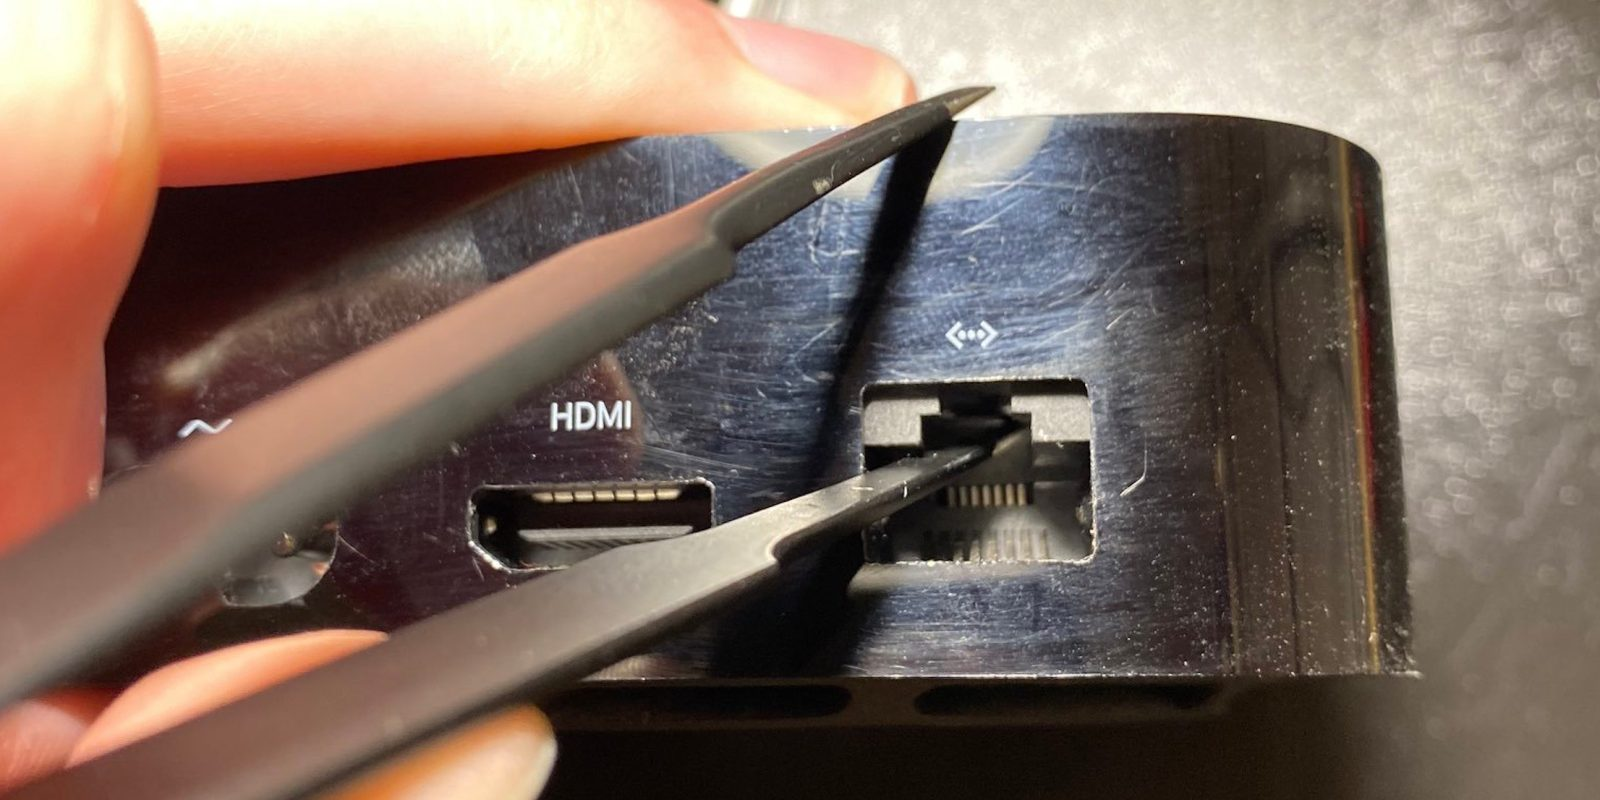 Apple hid a Lightning connector for debugging in the Apple TV 4K's ethernet port